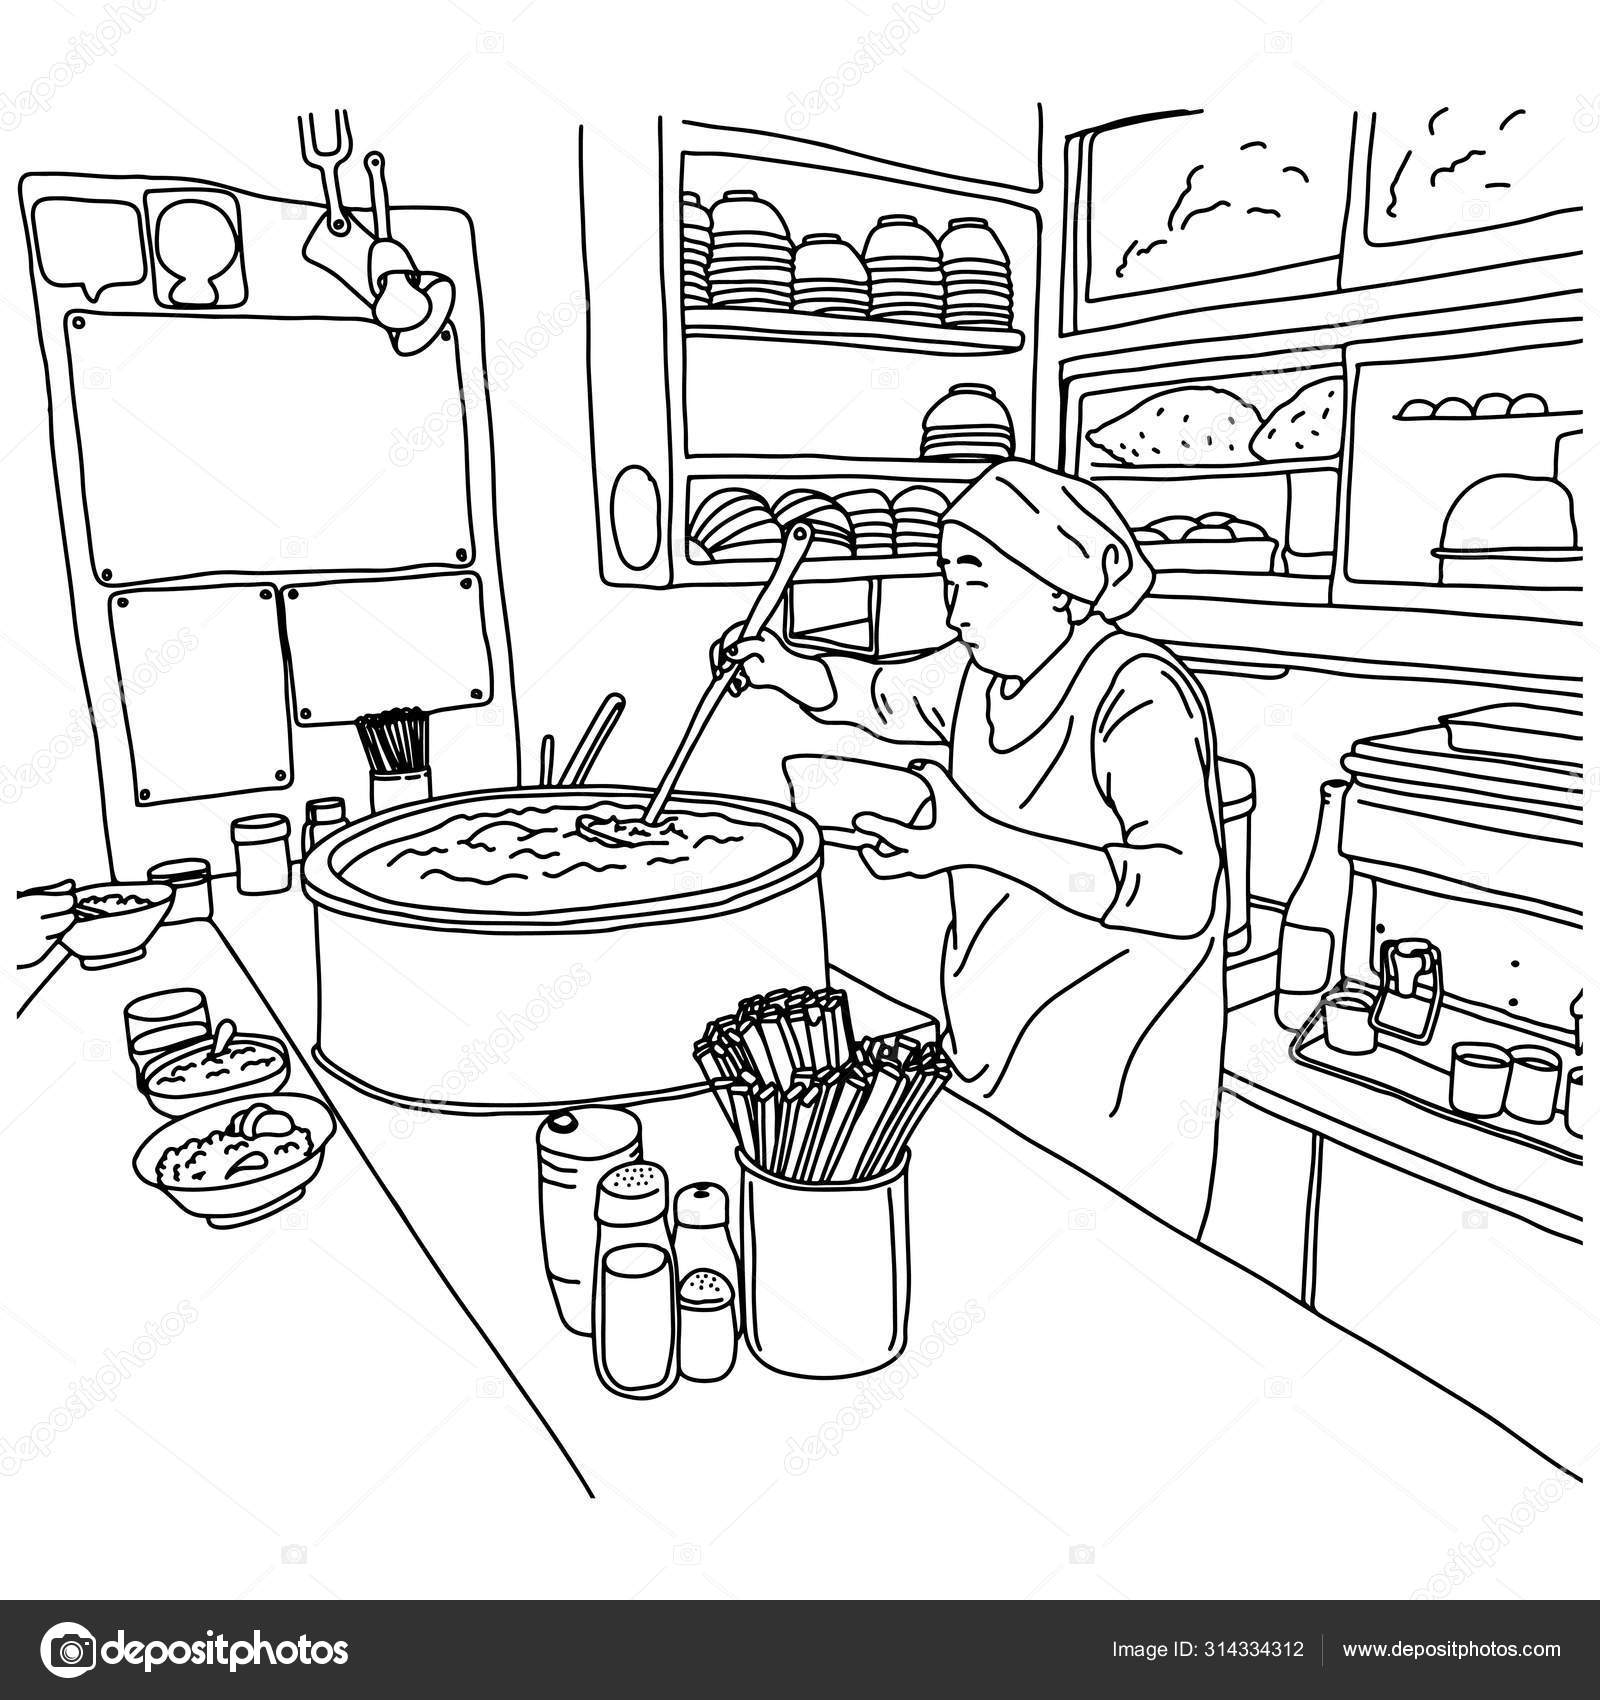 Old Female Chef Making Ramen Noodles In In Japanese Restaurant Vector Illustration Sketch Doodle Hand Drawn With Black Lines Isolated On White Background Stock Vector C A3701027d 314334312